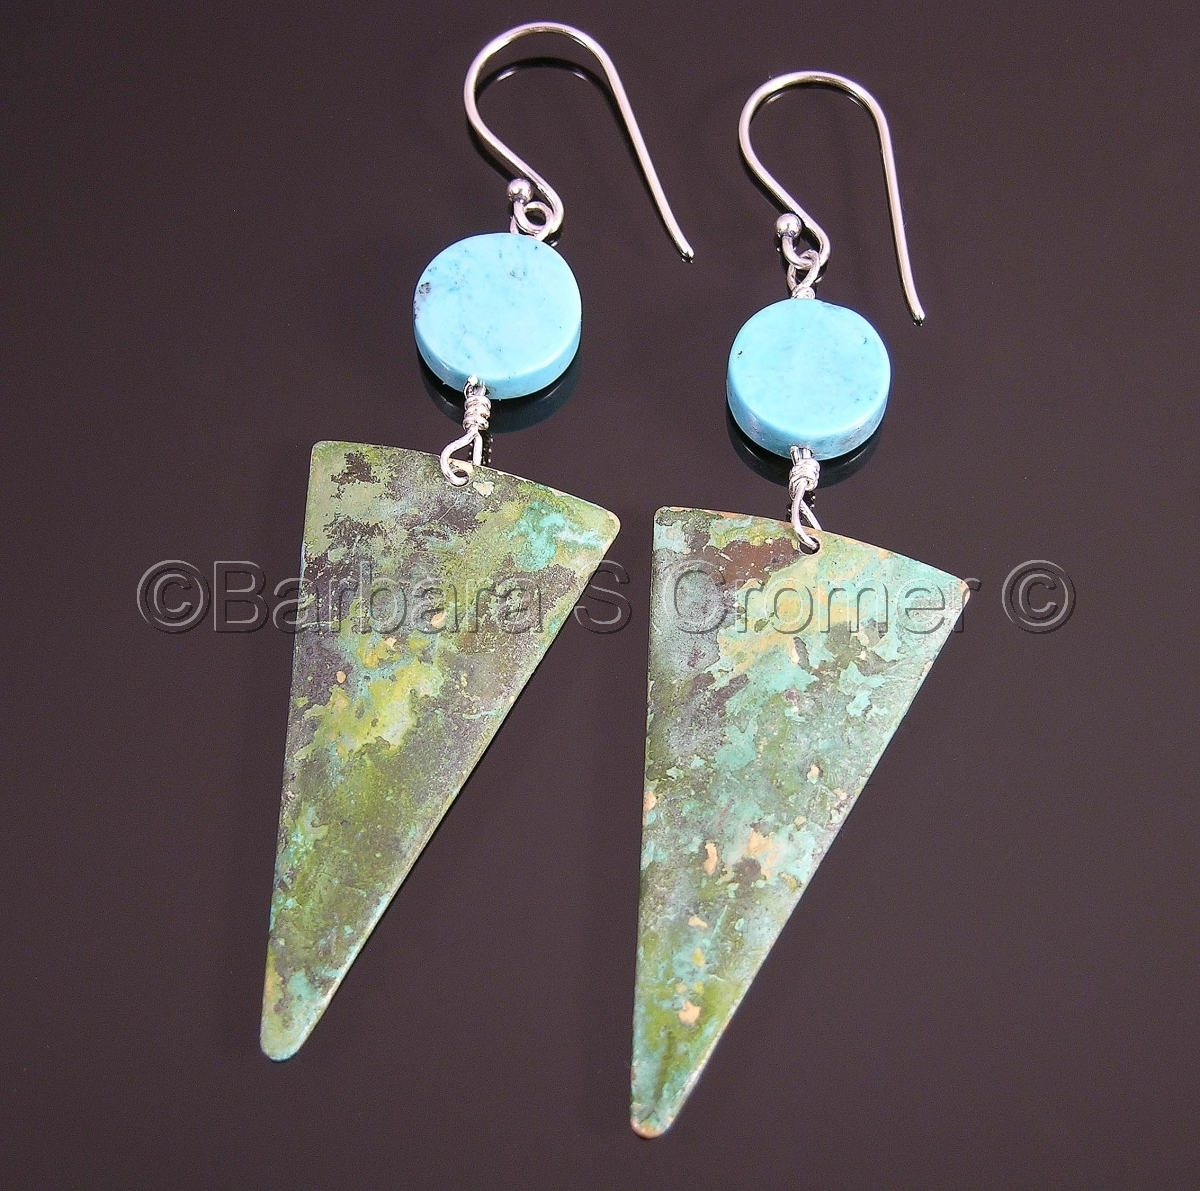 Modern, geometric earrings, inverted, verdigris,  oxidized brass triangles, Sterling silver to Turquoise disc beads,  Sterling silver french ear wires. (large view)